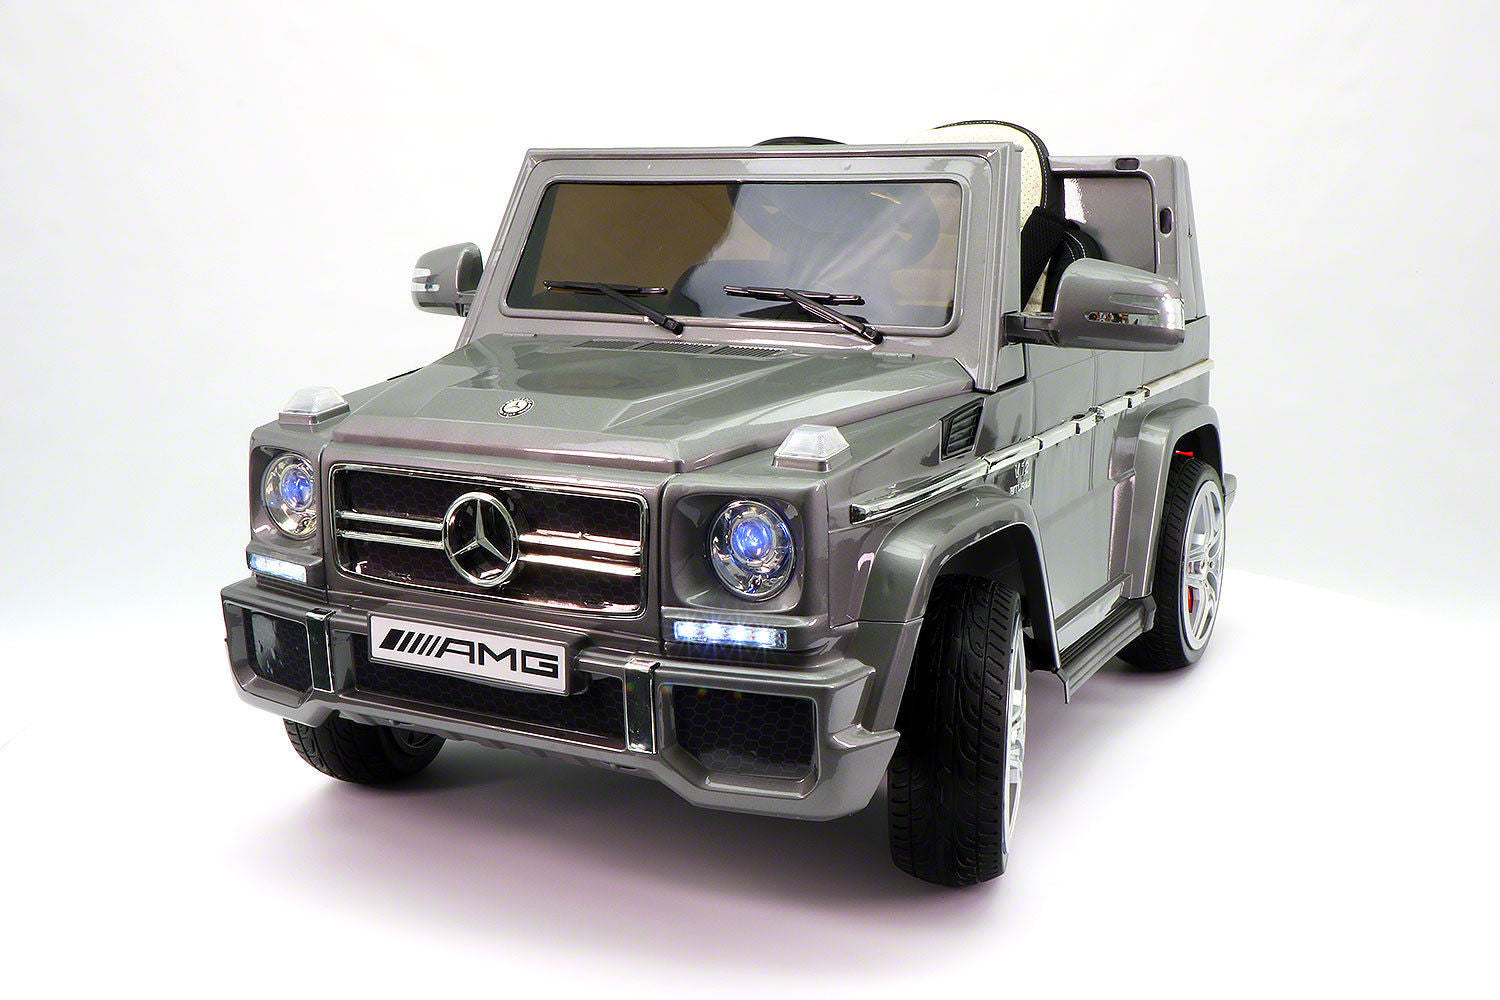 Mercedes benz g65 amg 12v battery powered ride on toy car for Mercedes benz toy car ride on